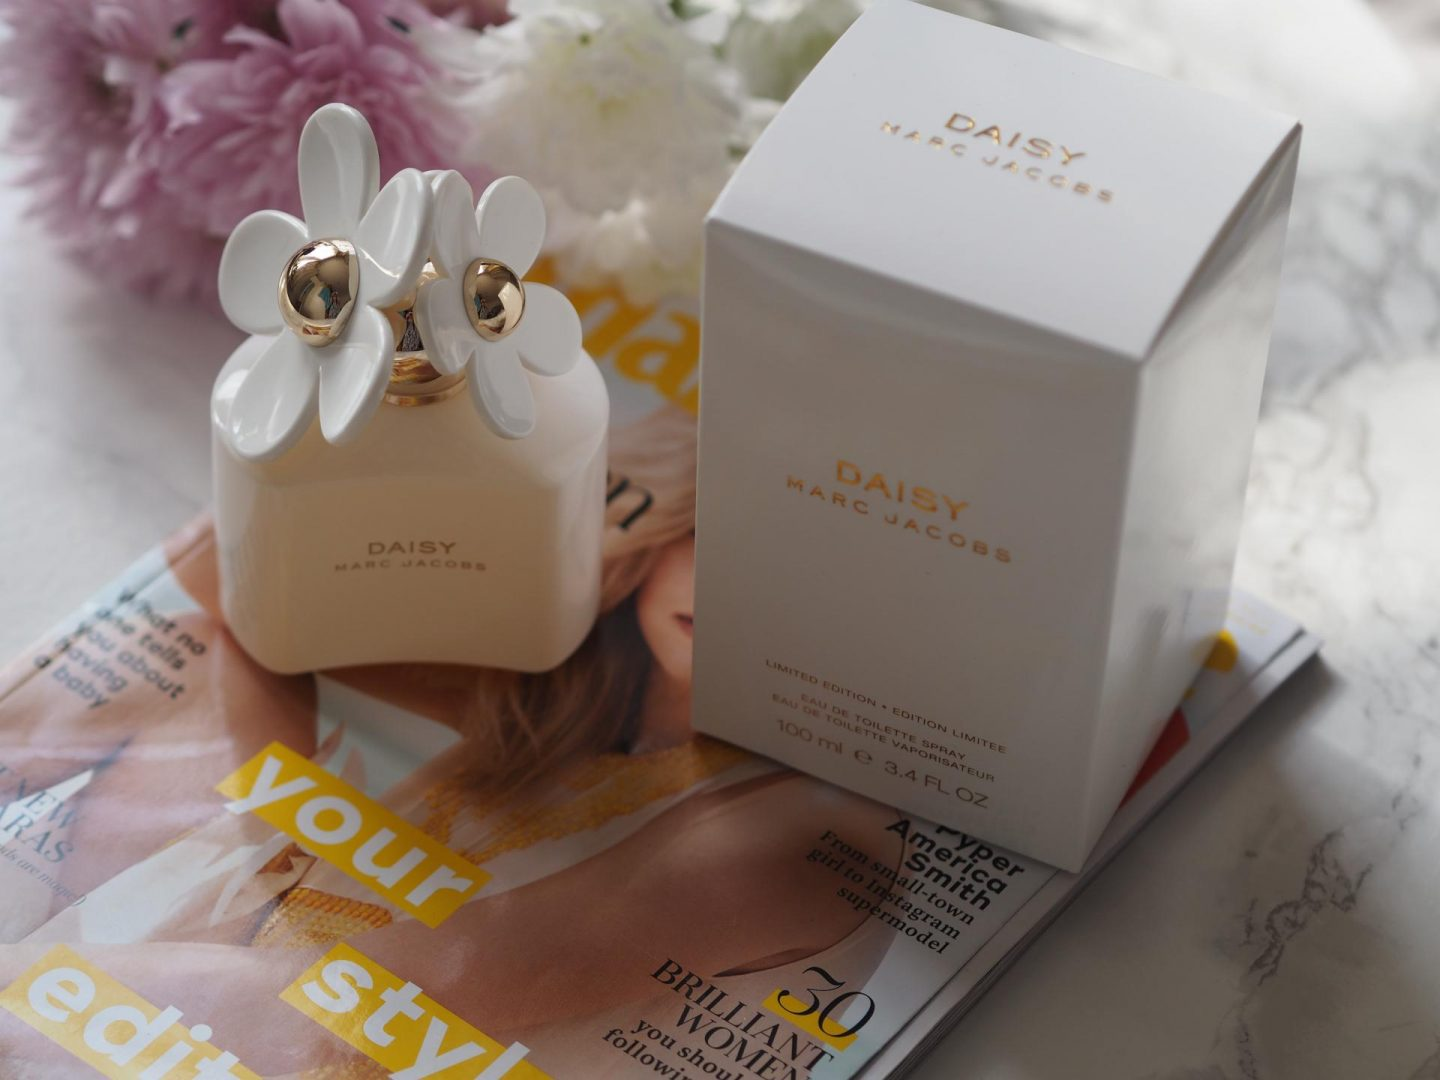 Fragrances For Women - Product: Daisy by Marc Jacobs (Limited Edition)